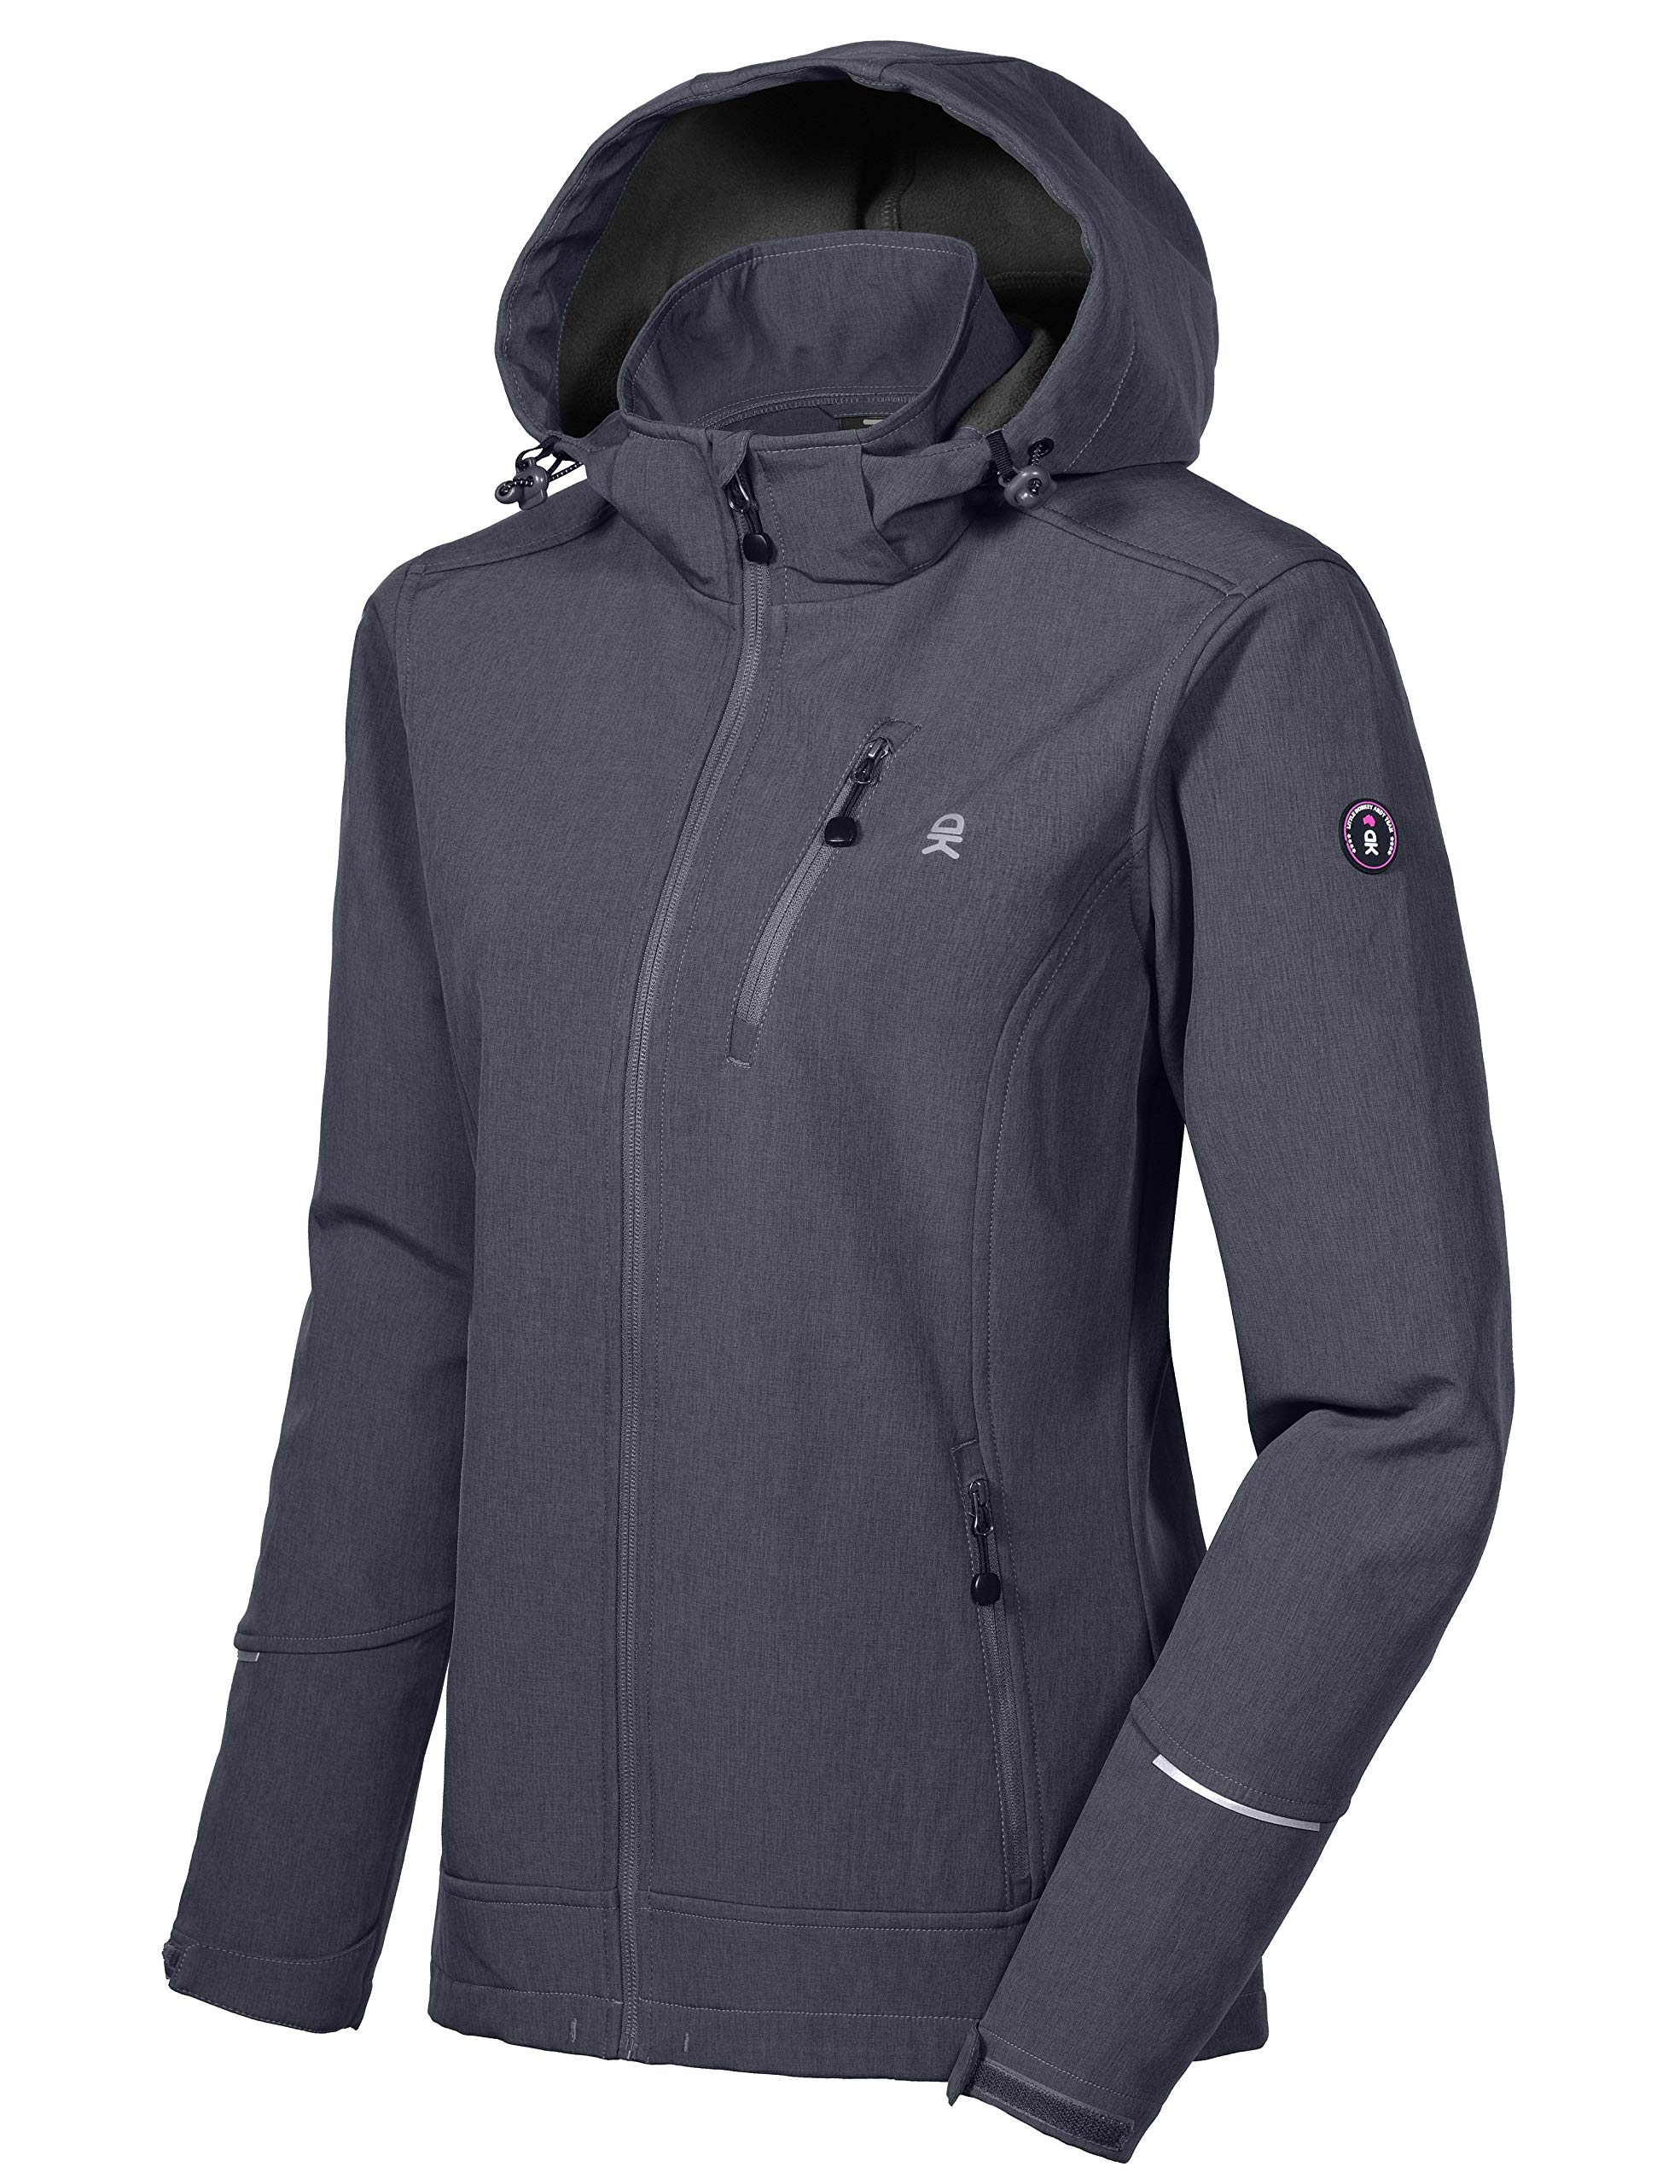 Little Donkey Andy Women's Softshell Jacket Ski Jacket with Removable Hood, Fleece Lined and Water Repellent Black Heather Size S by Little Donkey Andy